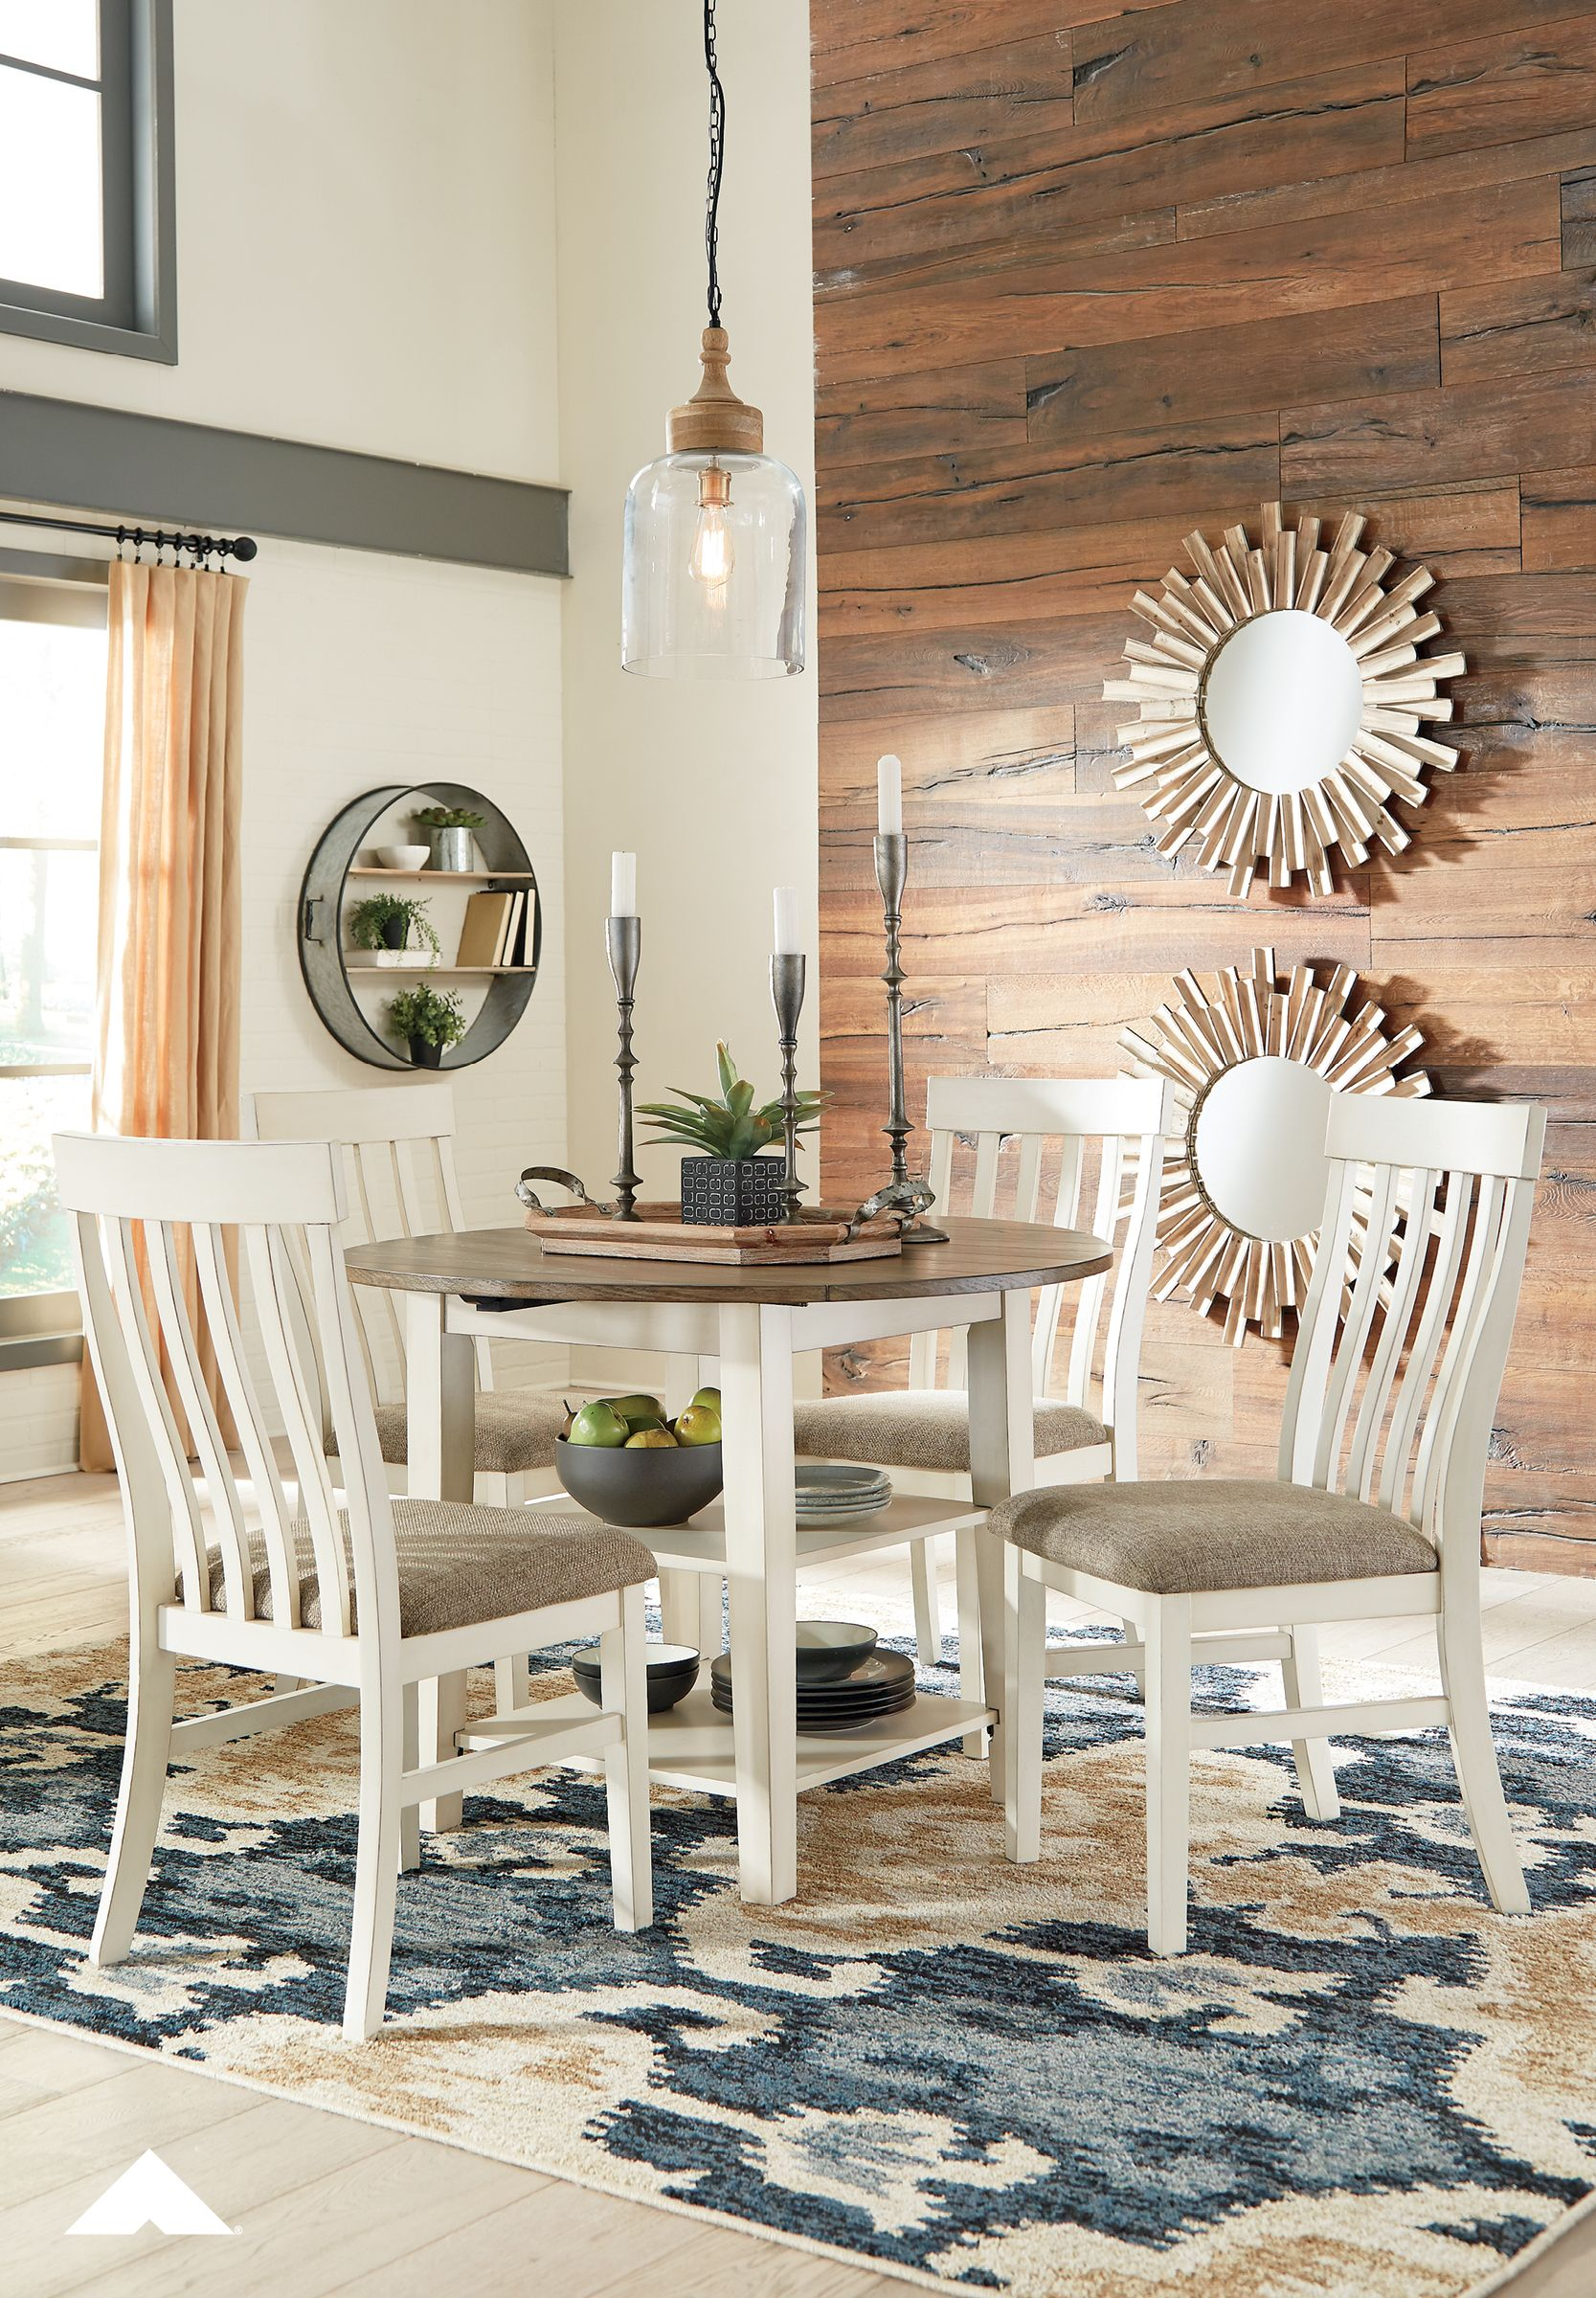 Bardilyn antique whitebrown dropleaf dining table and 4